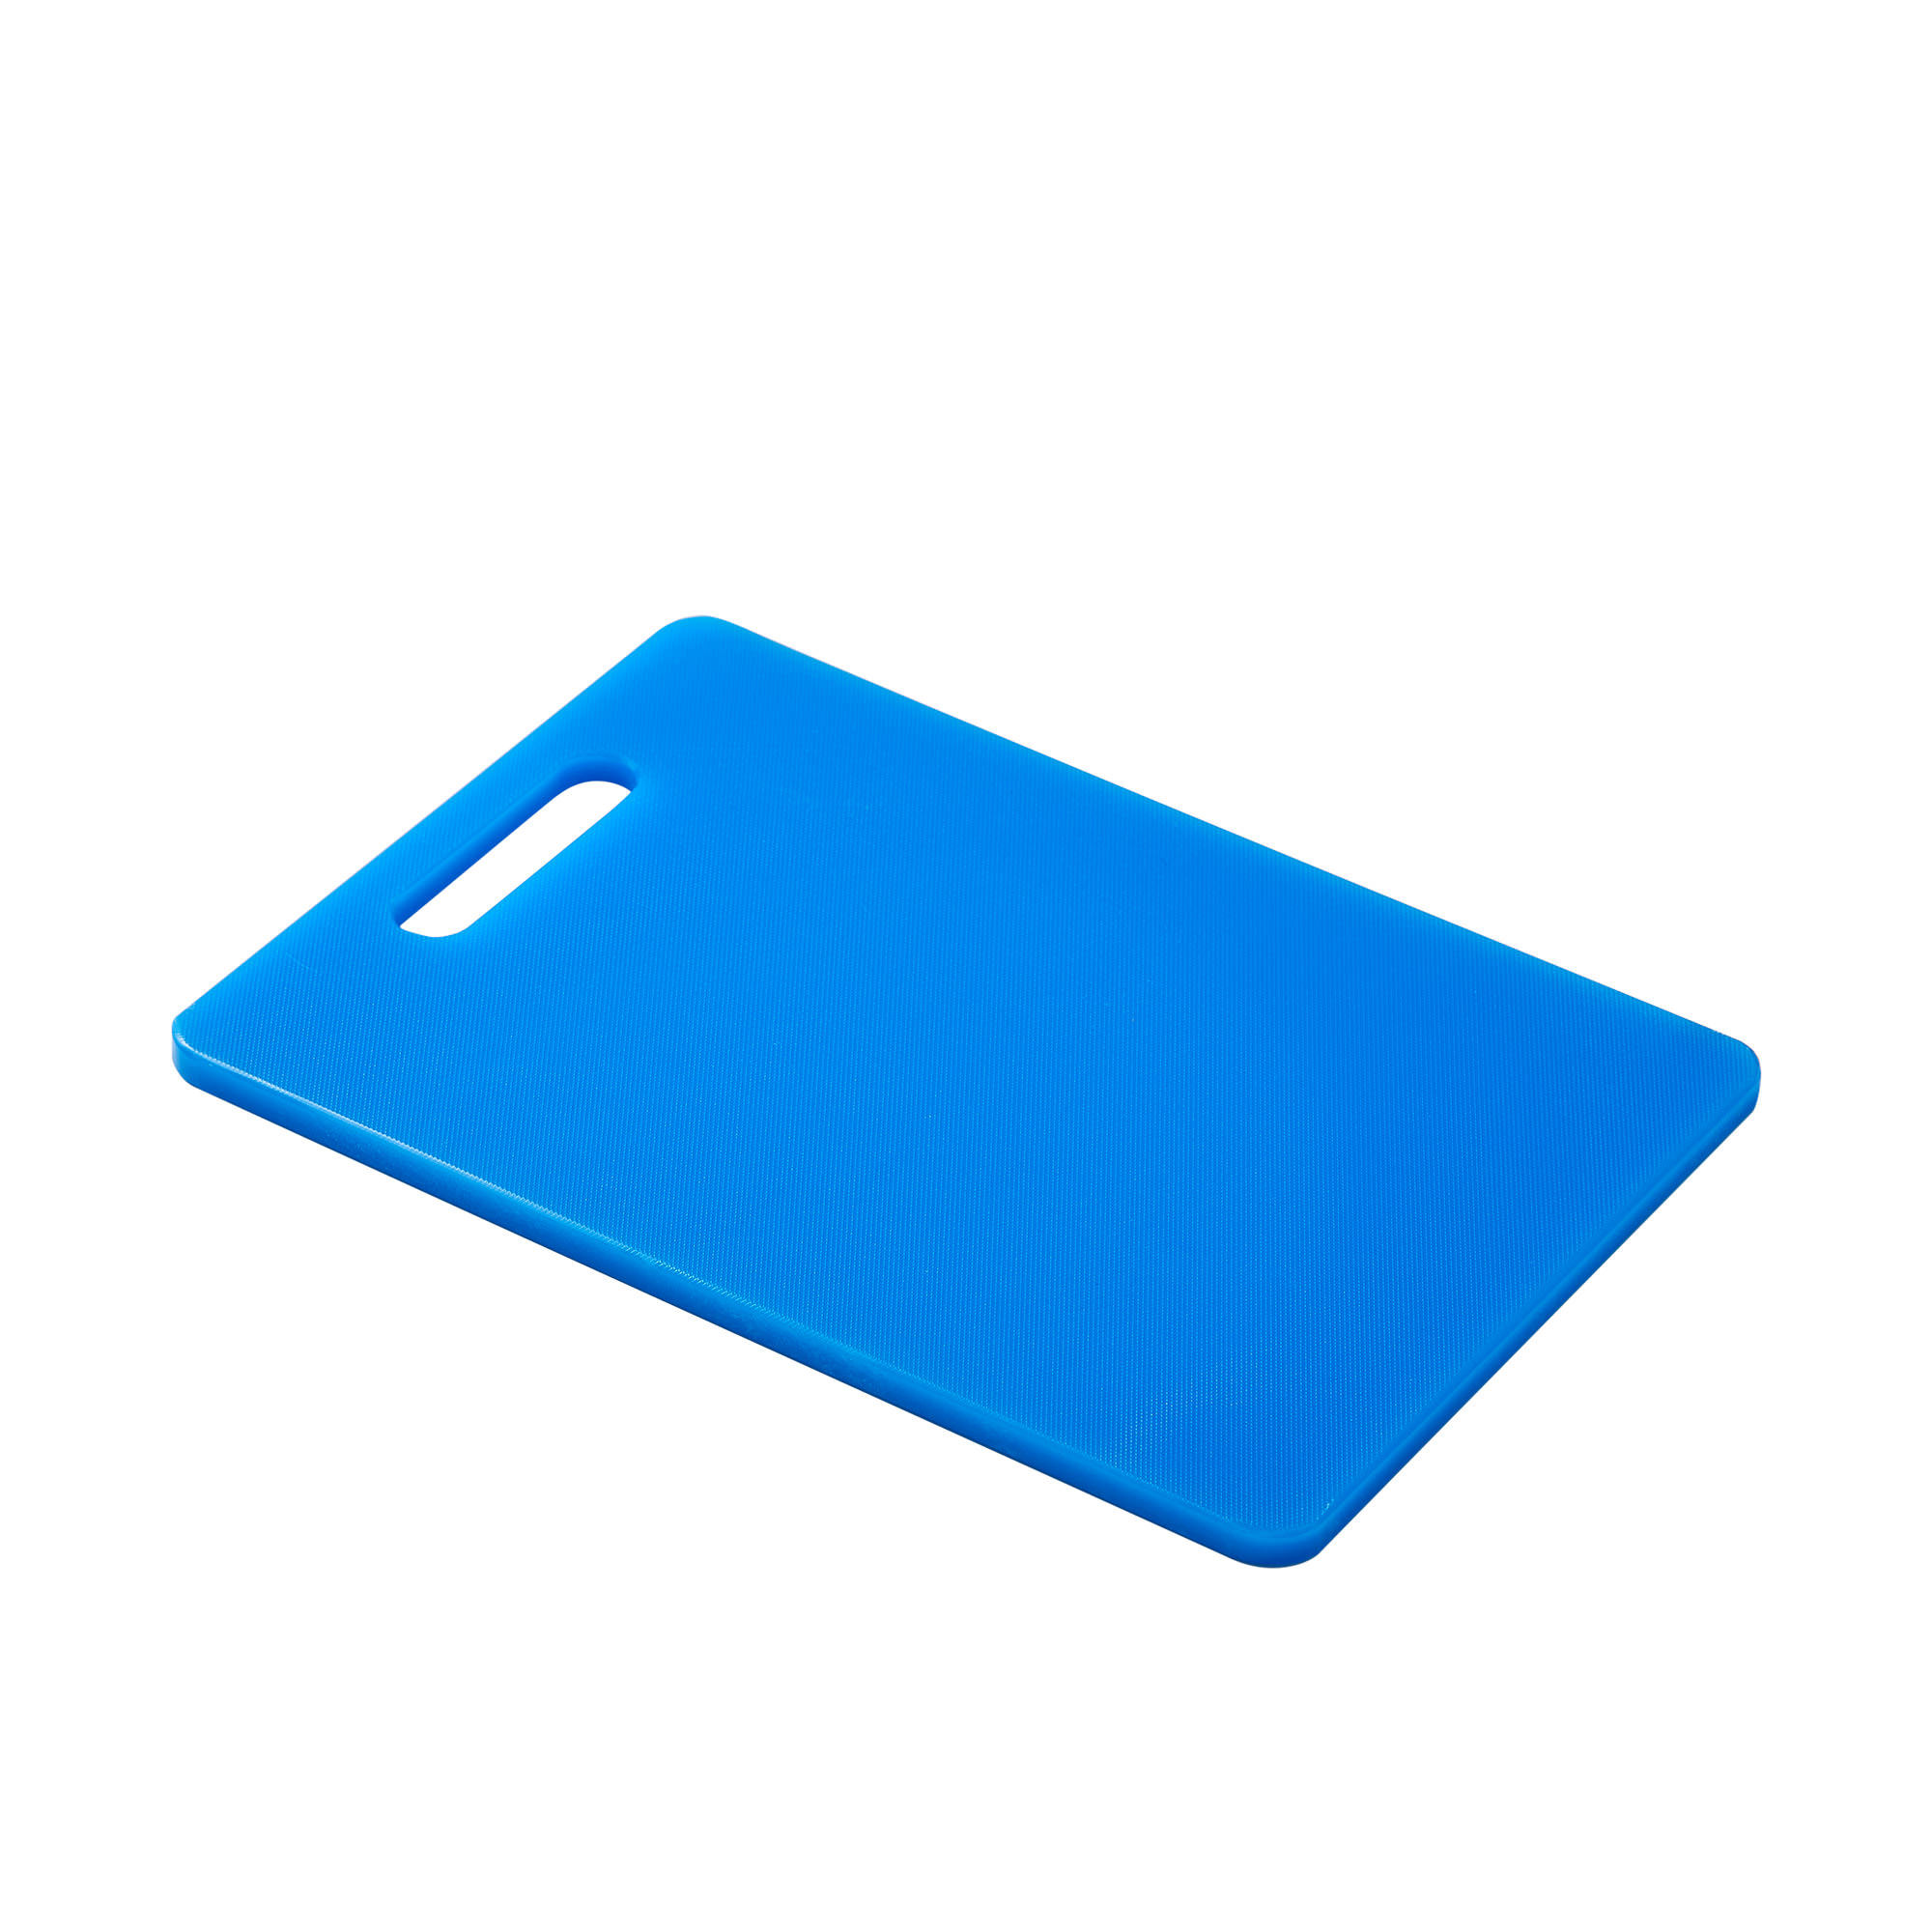 Kitchen Pro Classic Cutting <b>Board</b> 36x25x1.2cm Blue